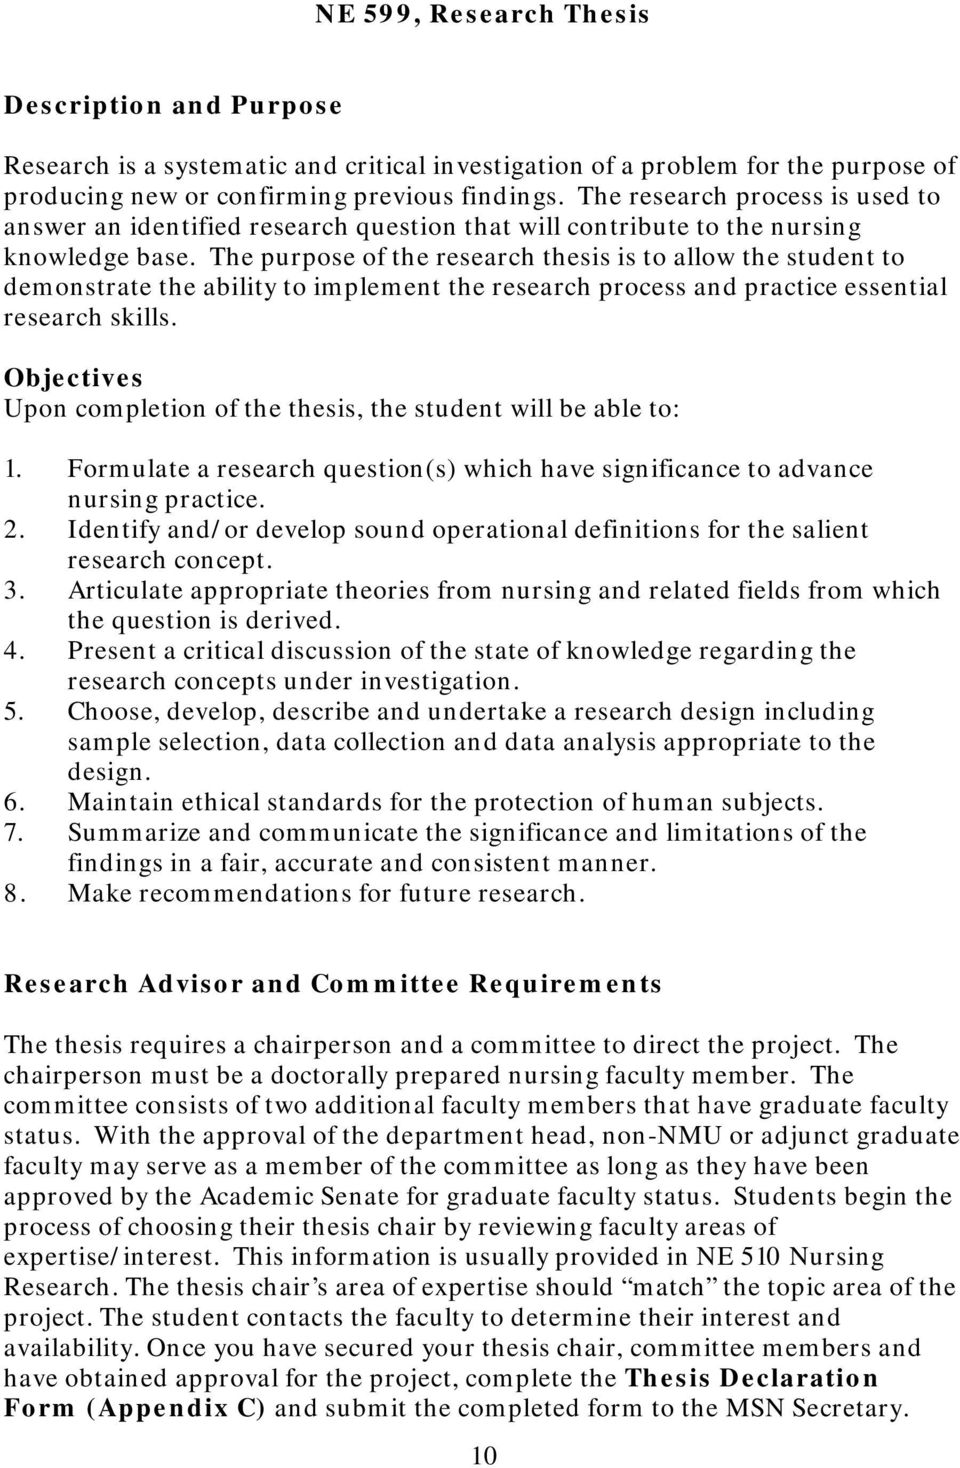 The purpose of the research thesis is to allow the student to demonstrate the ability to implement the research process and practice essential research skills.